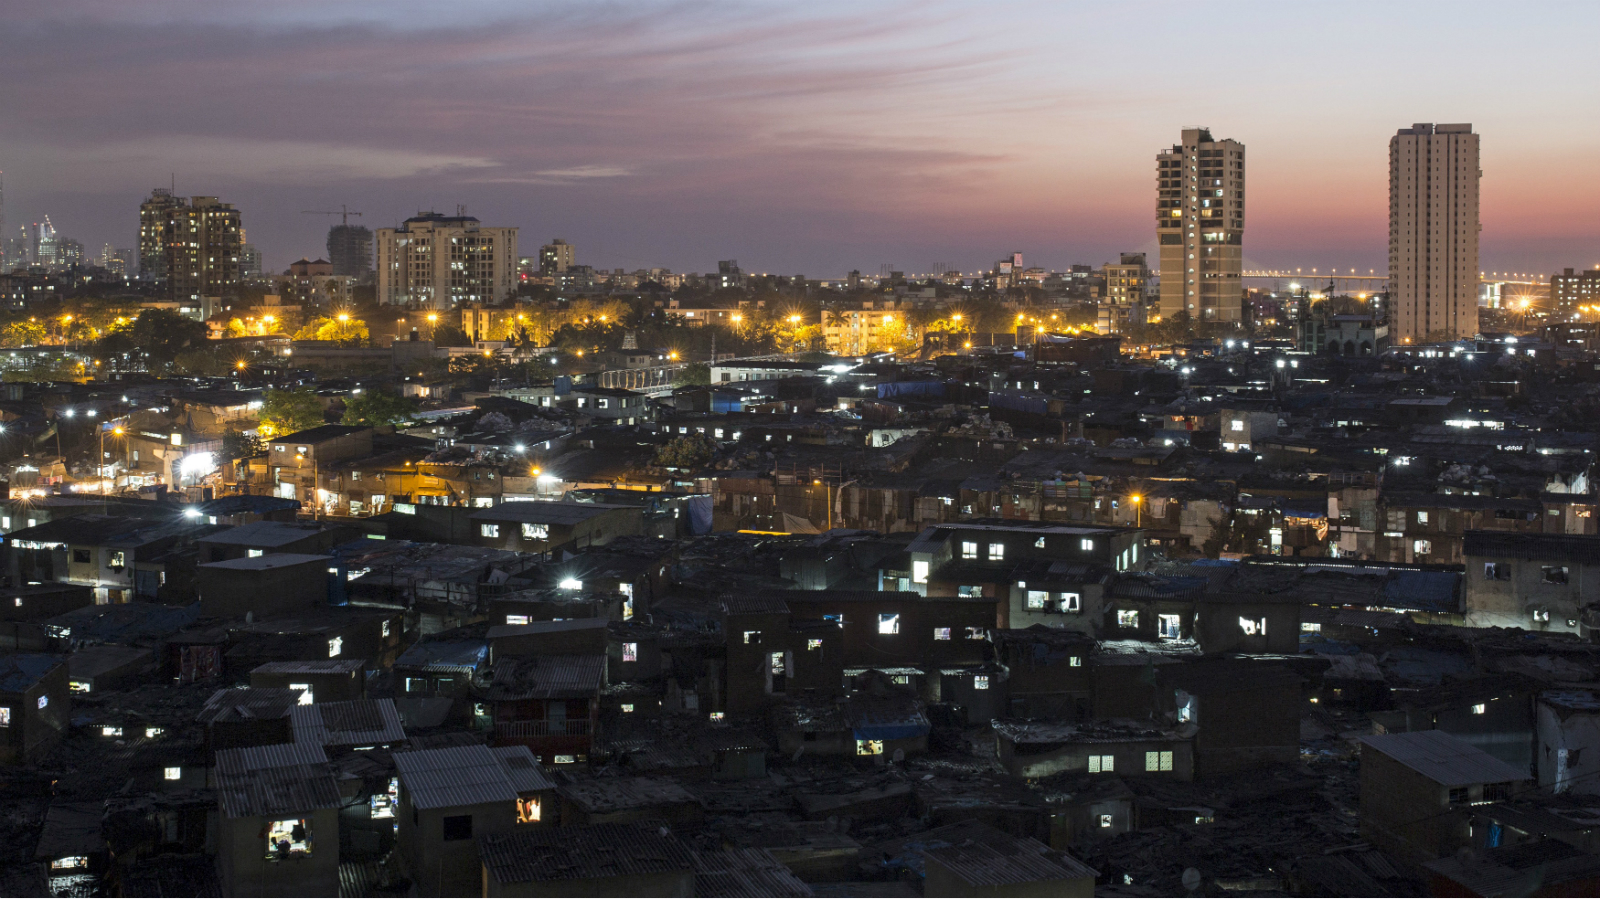 High-rise residential towers are seen behind shanties in Dharavi, one of Asia's largest slums, in Mumbai March 18, 2015. In Mumbai, the windows of new high-rise apartment blocks, old low-rise residential buildings and shantytown shacks portray the disparity in living conditions and incomes in the Indian city. Rents for a place to live range from more than $2,000 to less than $5 a month